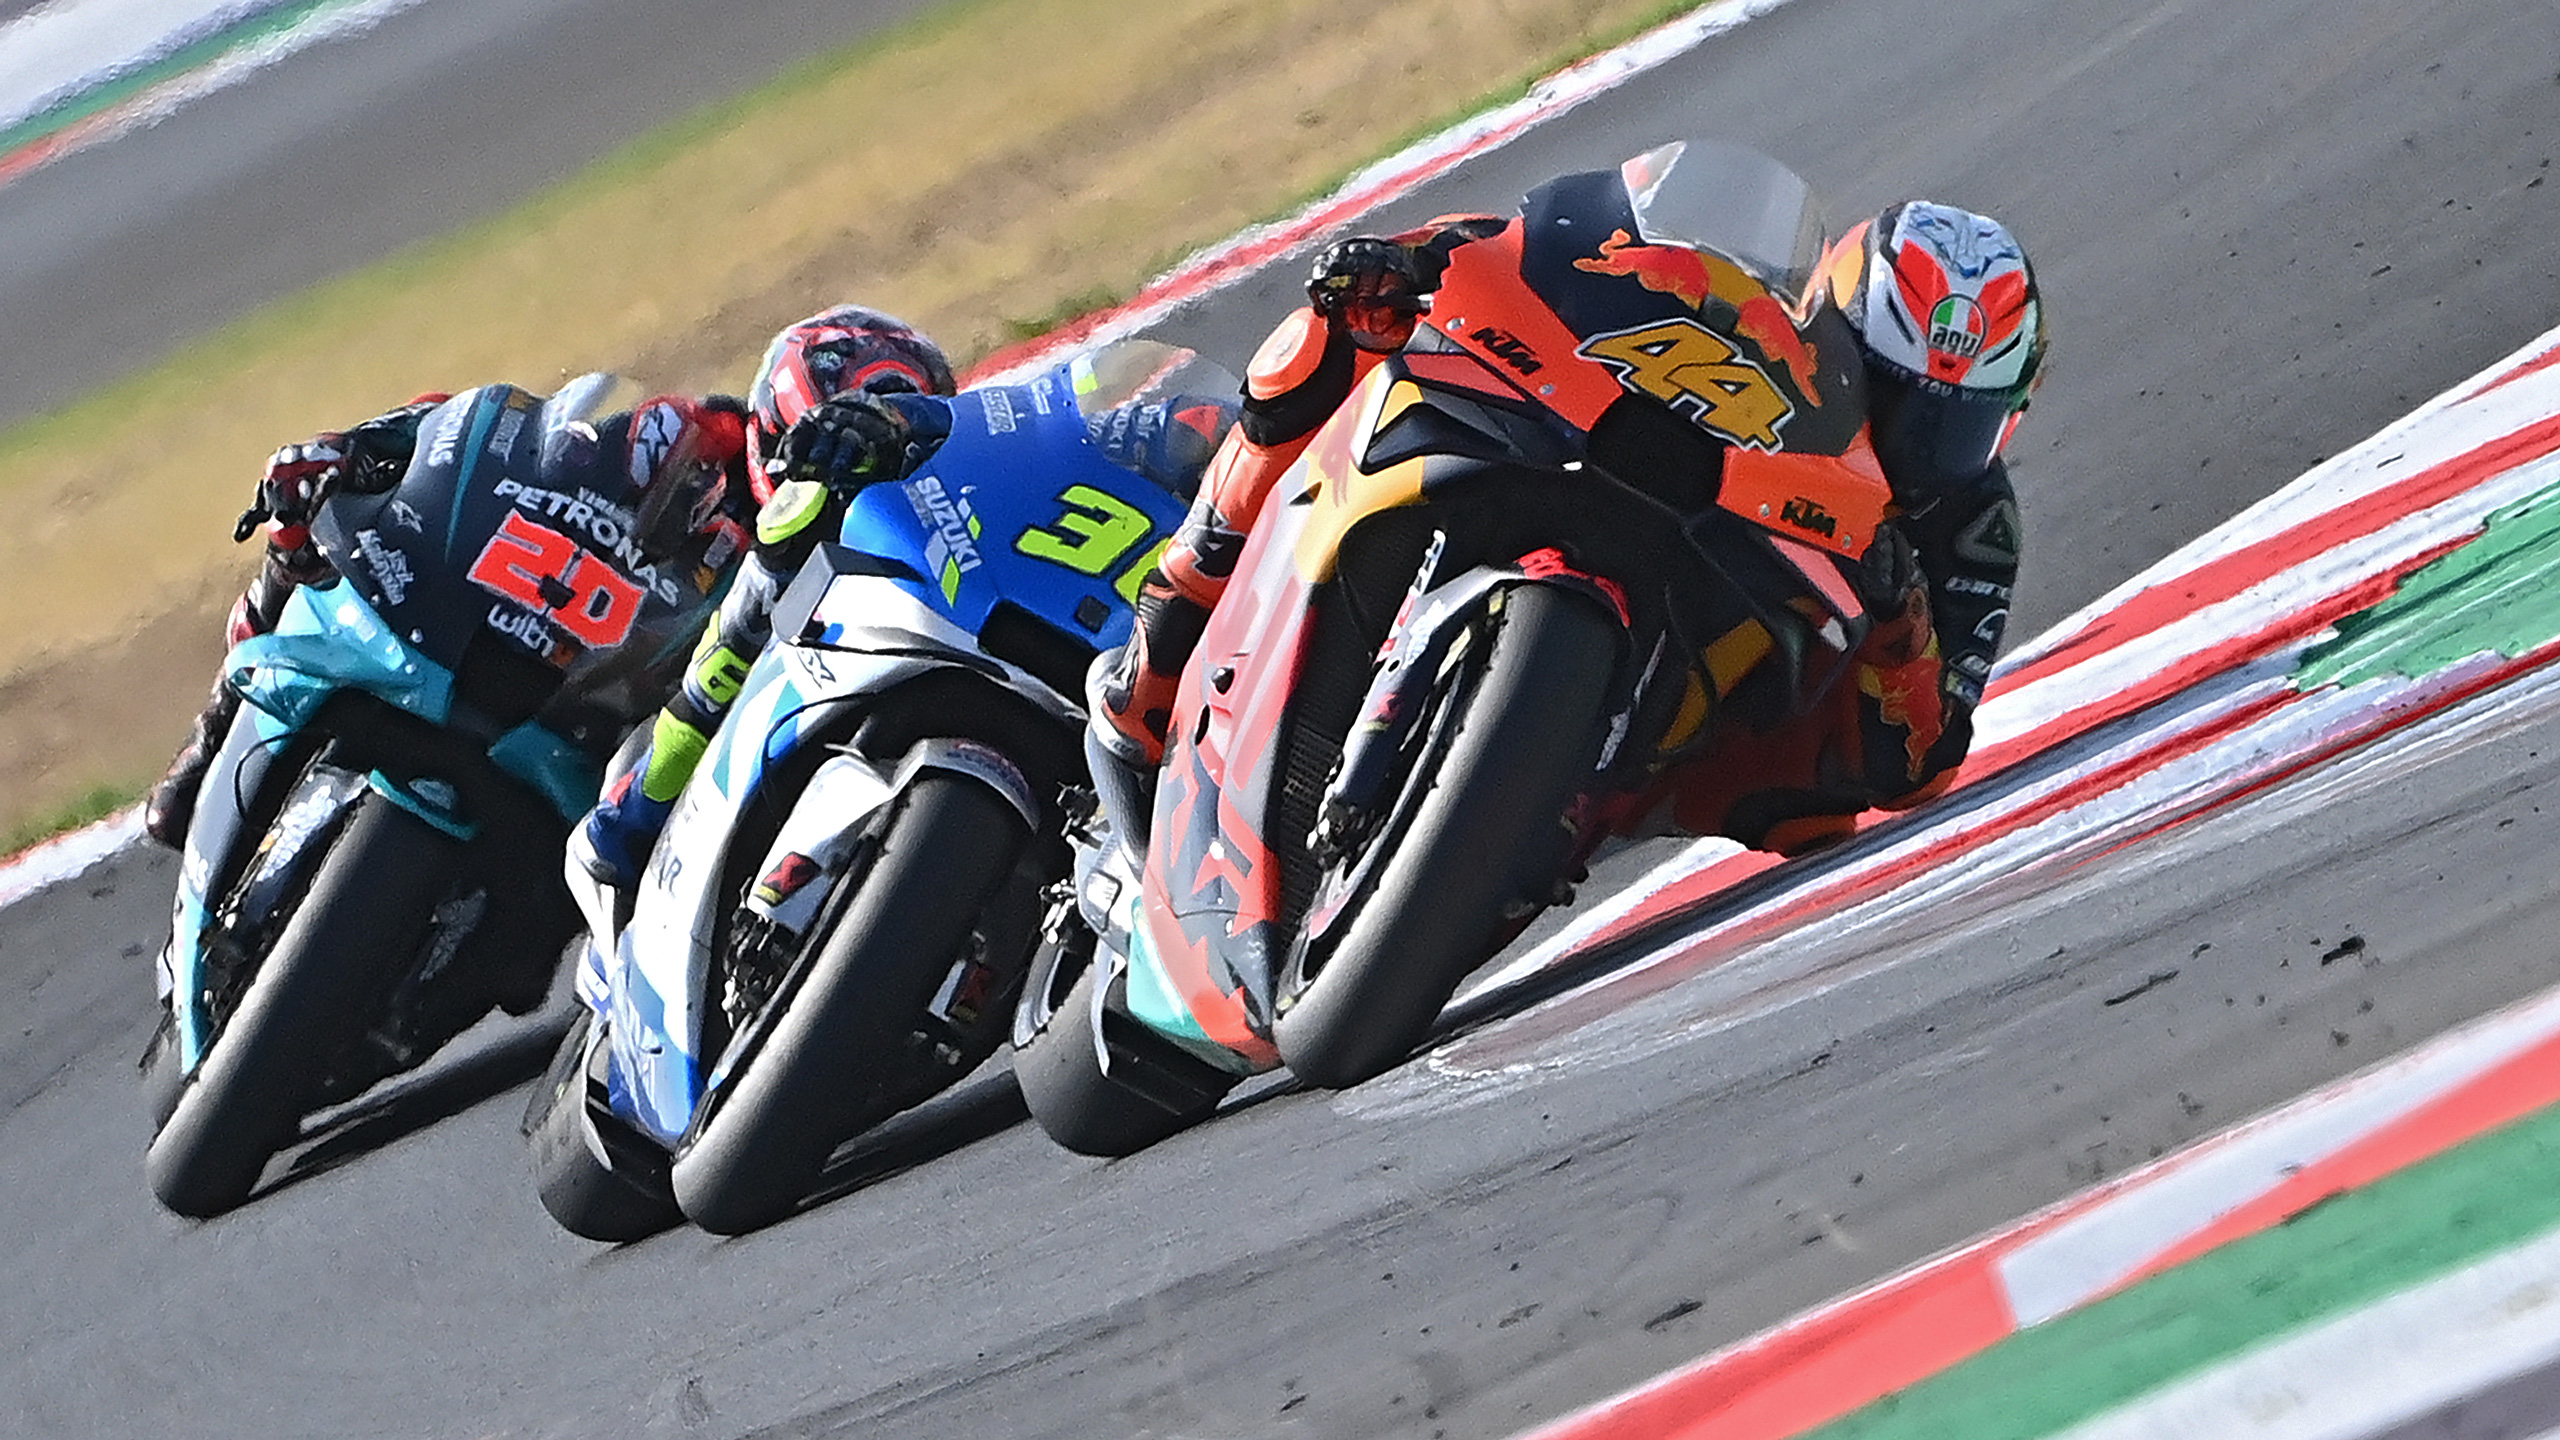 Motogp Live Stream How To Watch Catalan Gp Online Tom S Guide